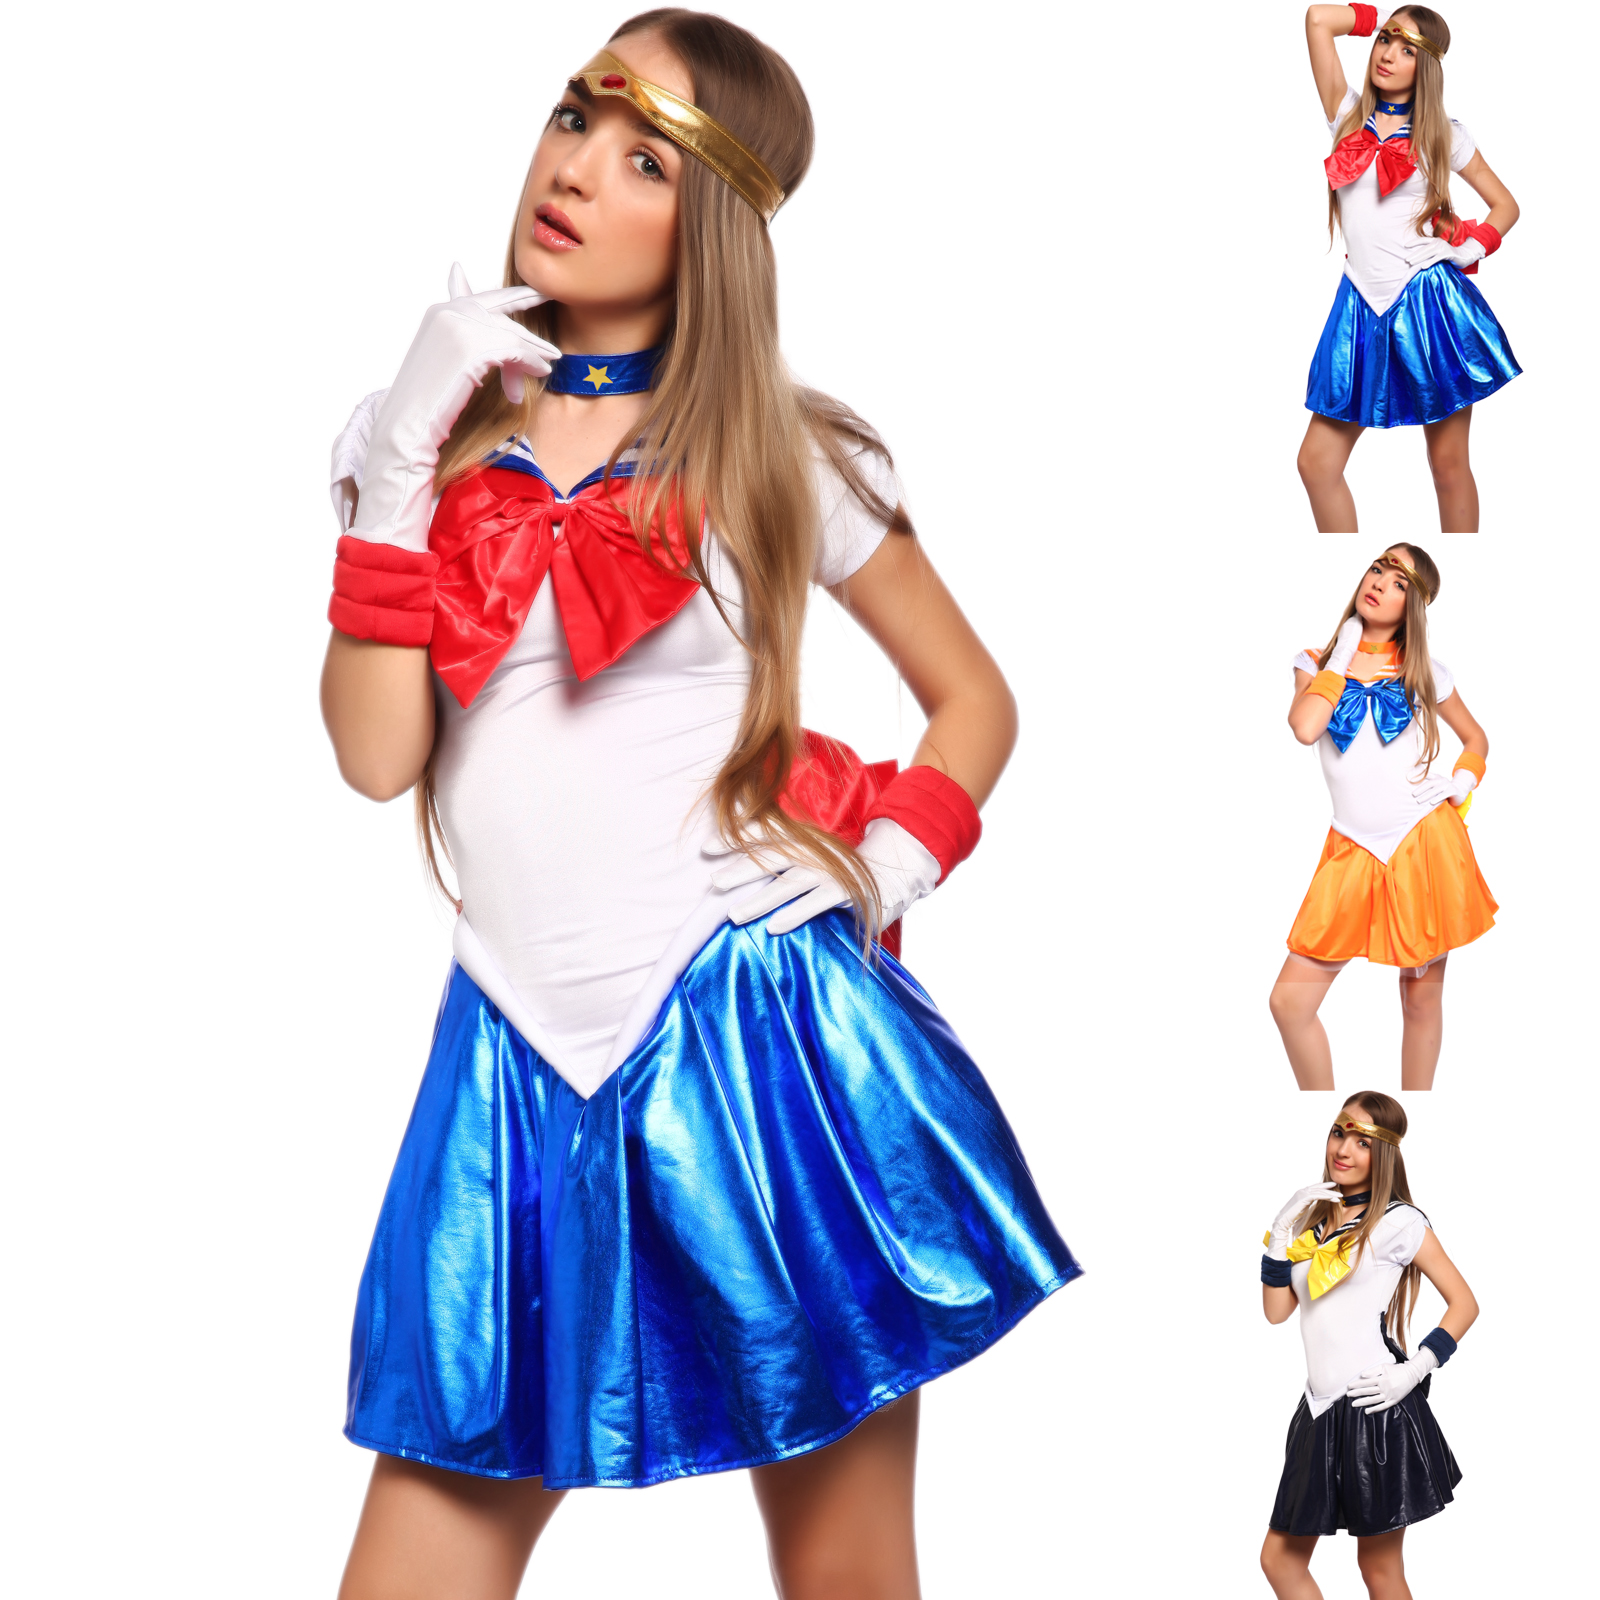 serena cosplay sailor moon venus uranus costume anime. Black Bedroom Furniture Sets. Home Design Ideas